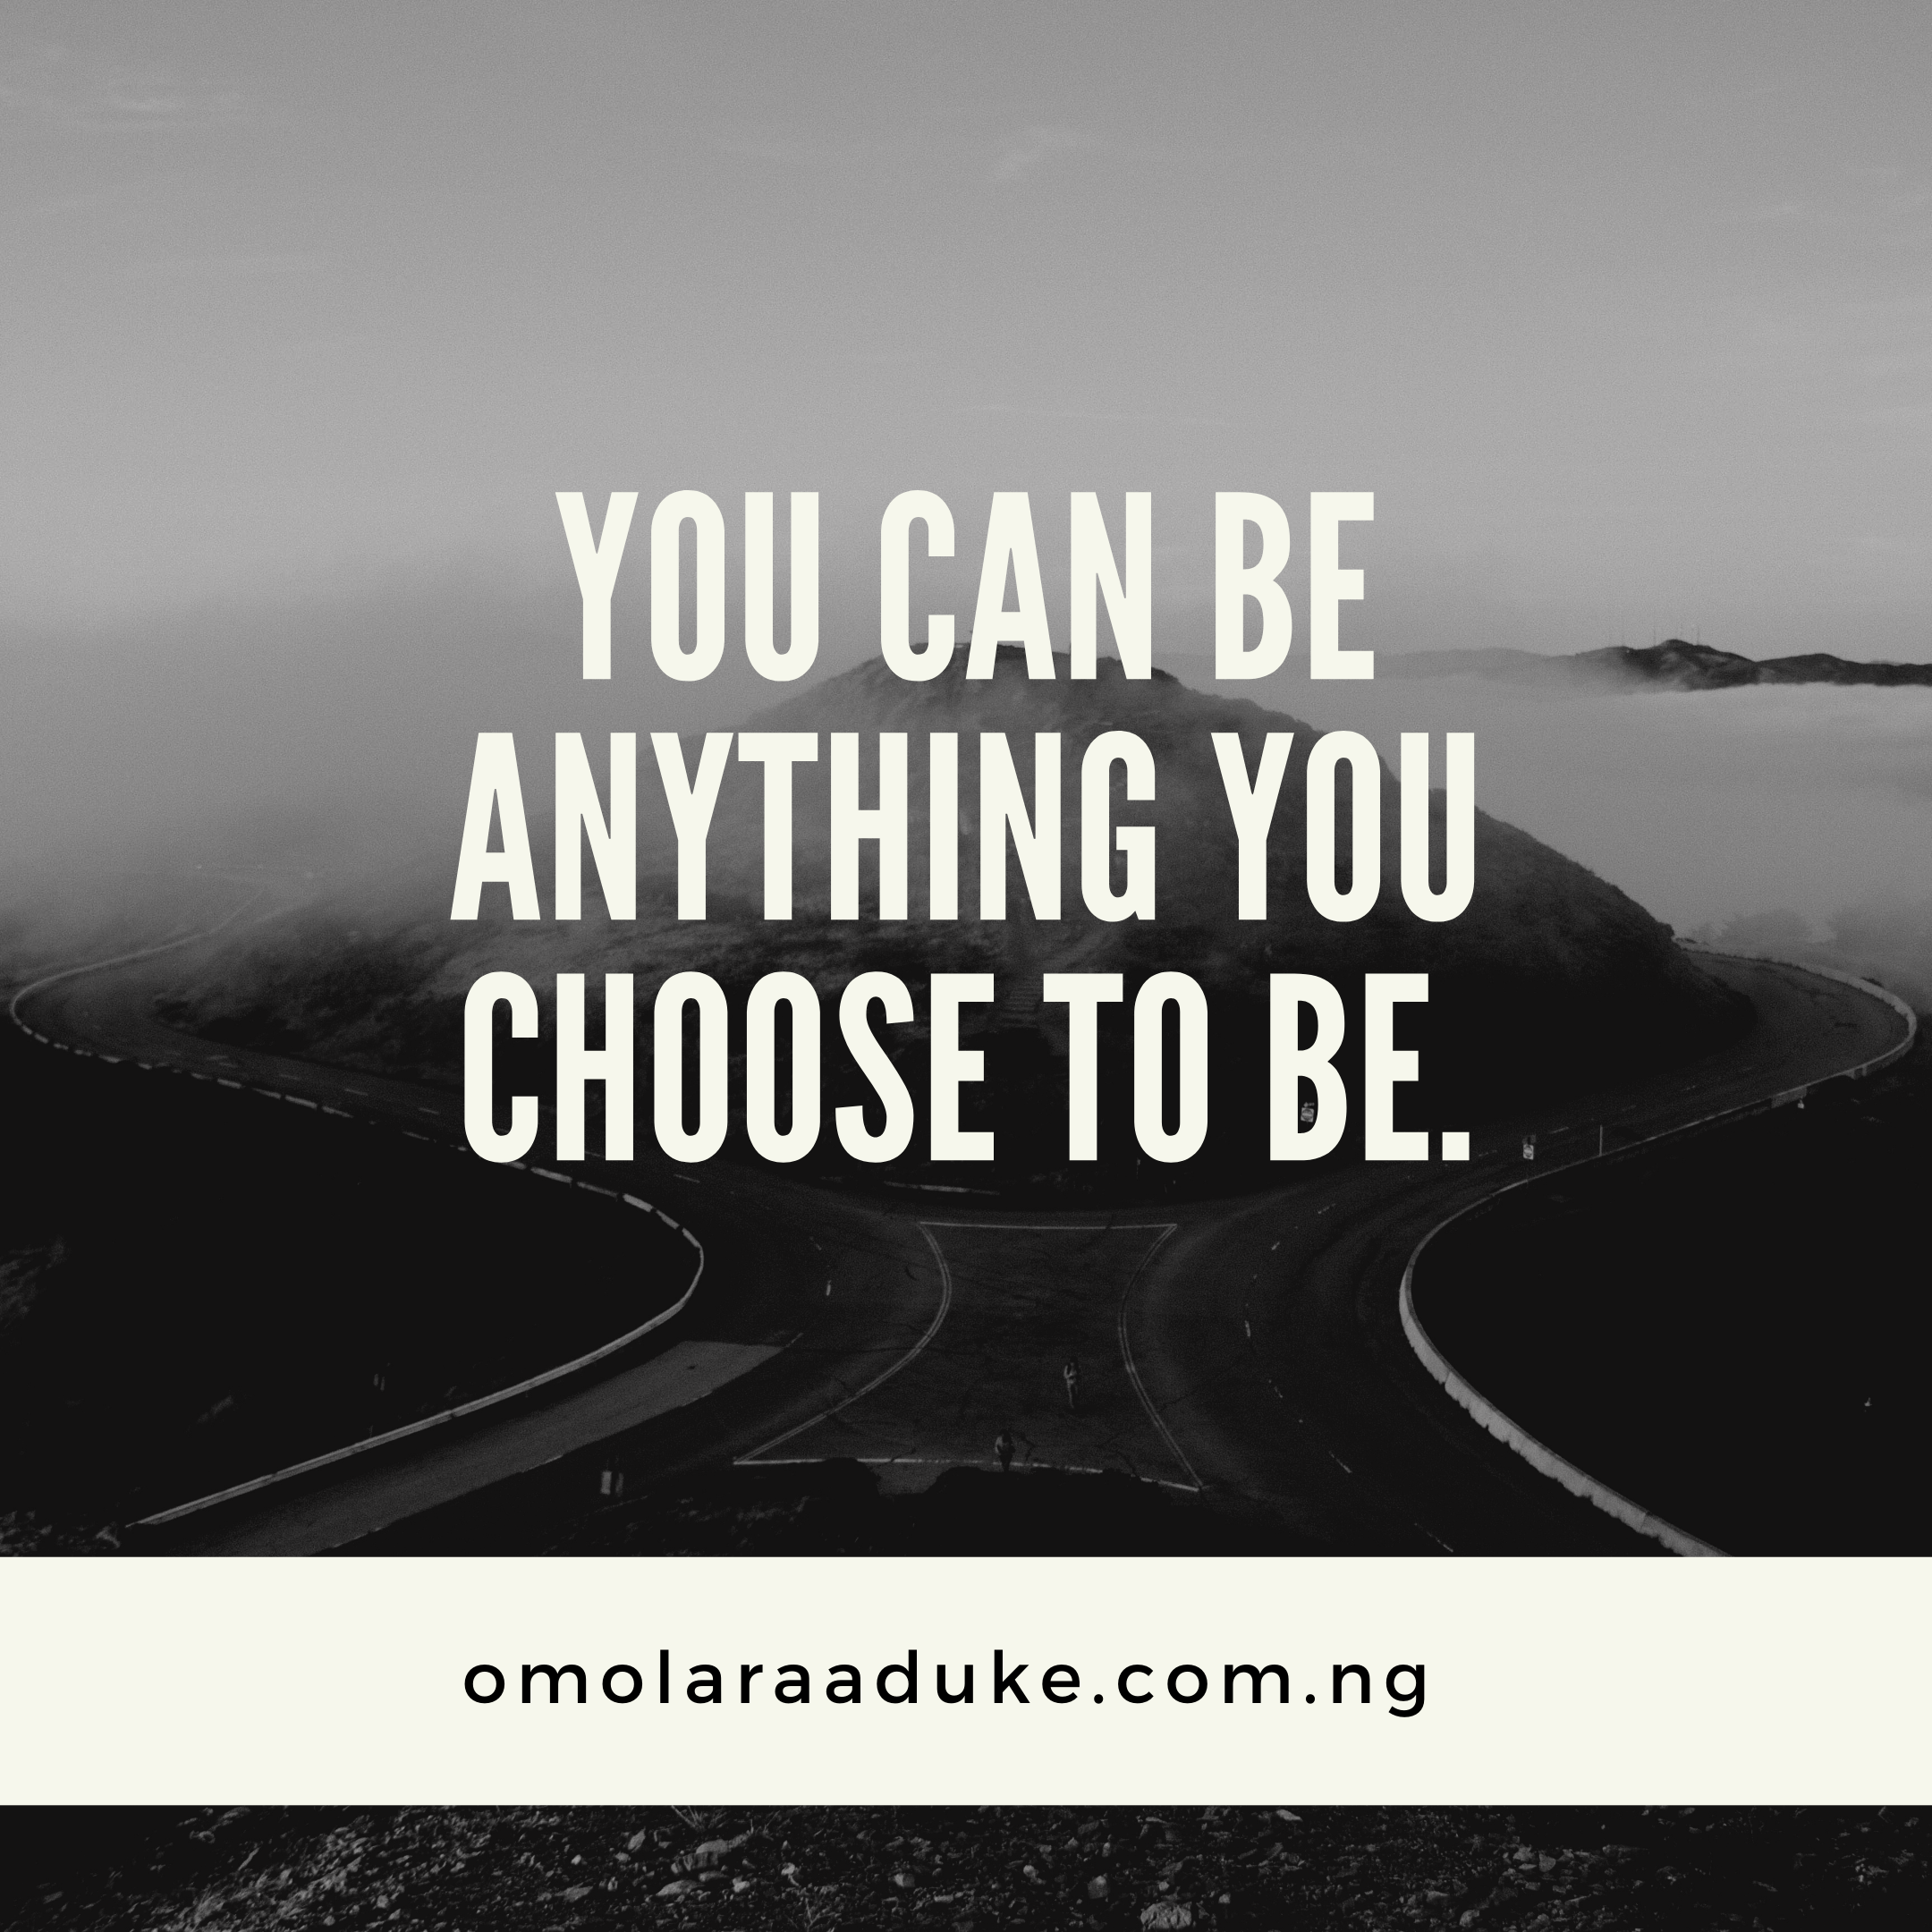 YOU CAN BE ANYTHING YOU CHOOSE TO BE